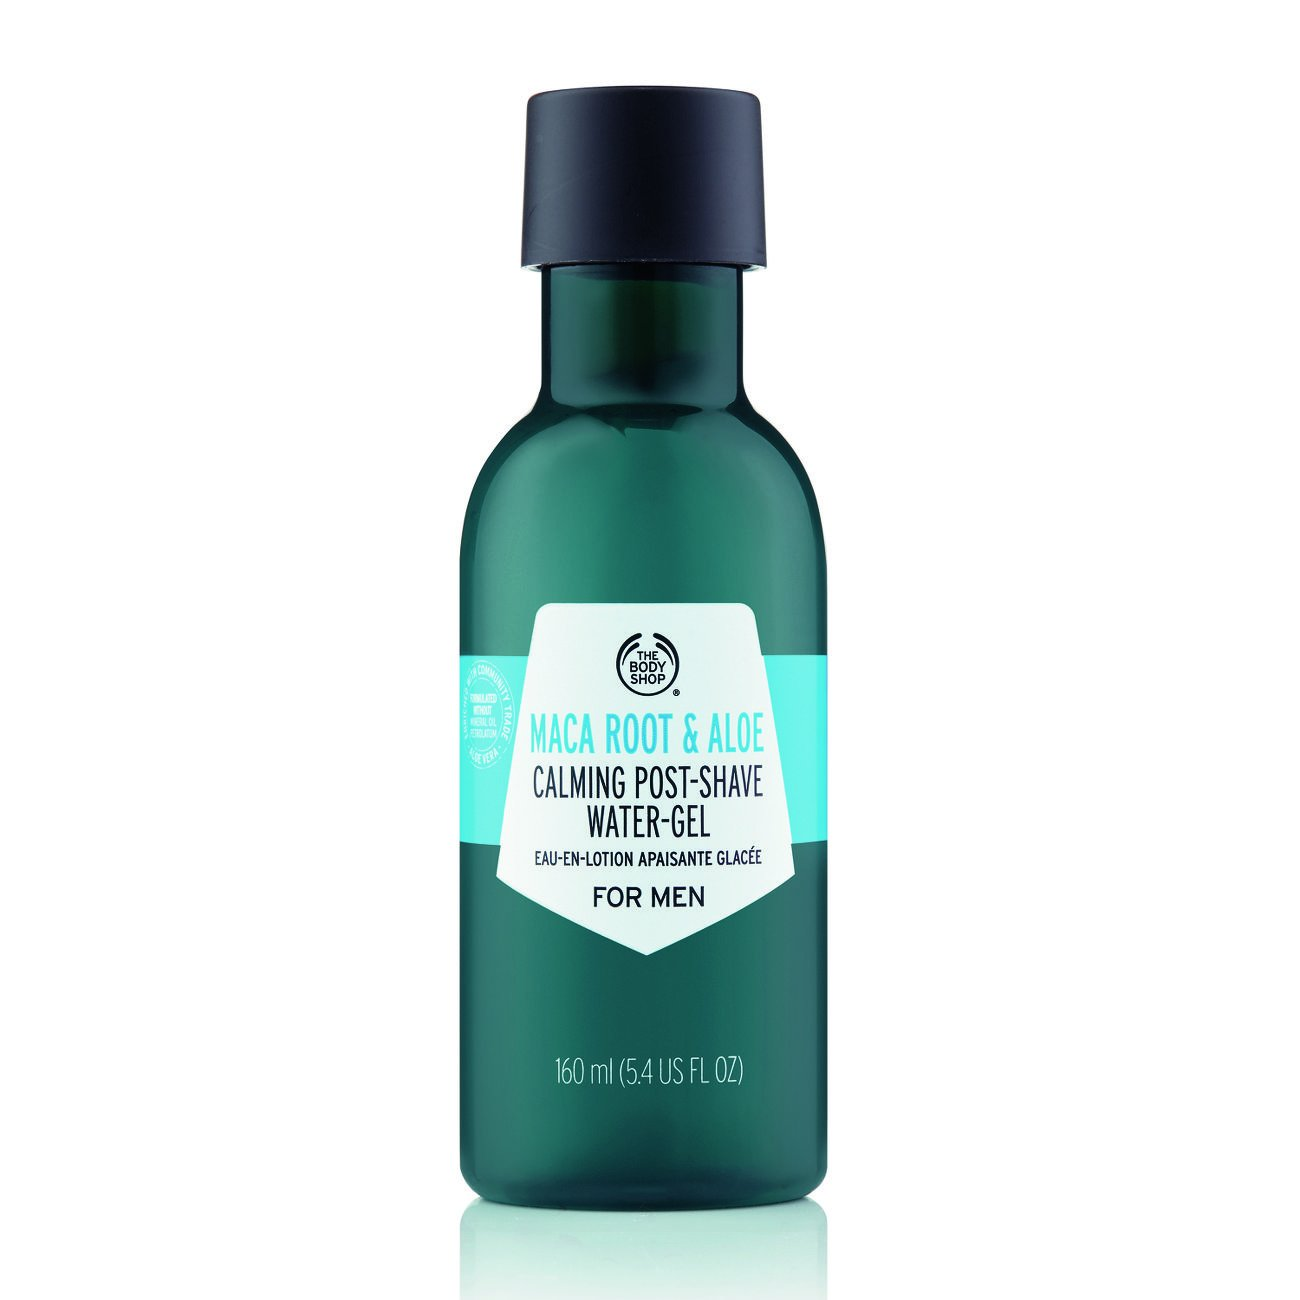 The Body Shop Maca Root & Aloe - Gel de agua para hombre, 160 ml